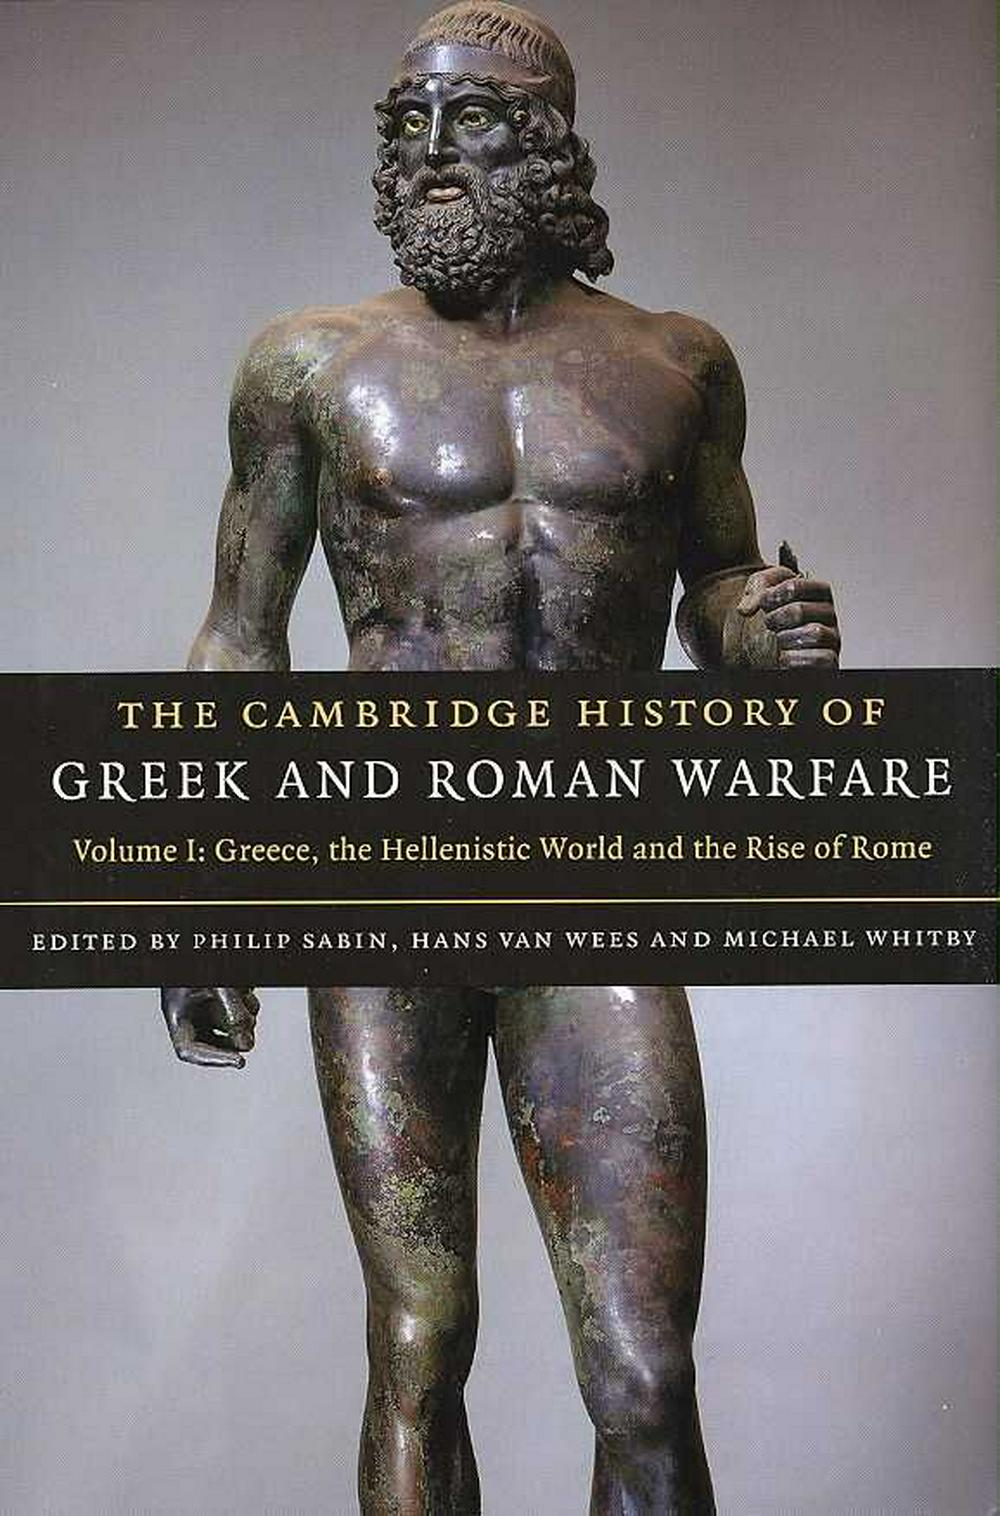 The Cambridge History of Greek and Roman Warfare: Volume 1, Greece, The Hellenistic World and the Rise of Rome by Philip A. G. Sabin, ISBN: 9780521782739